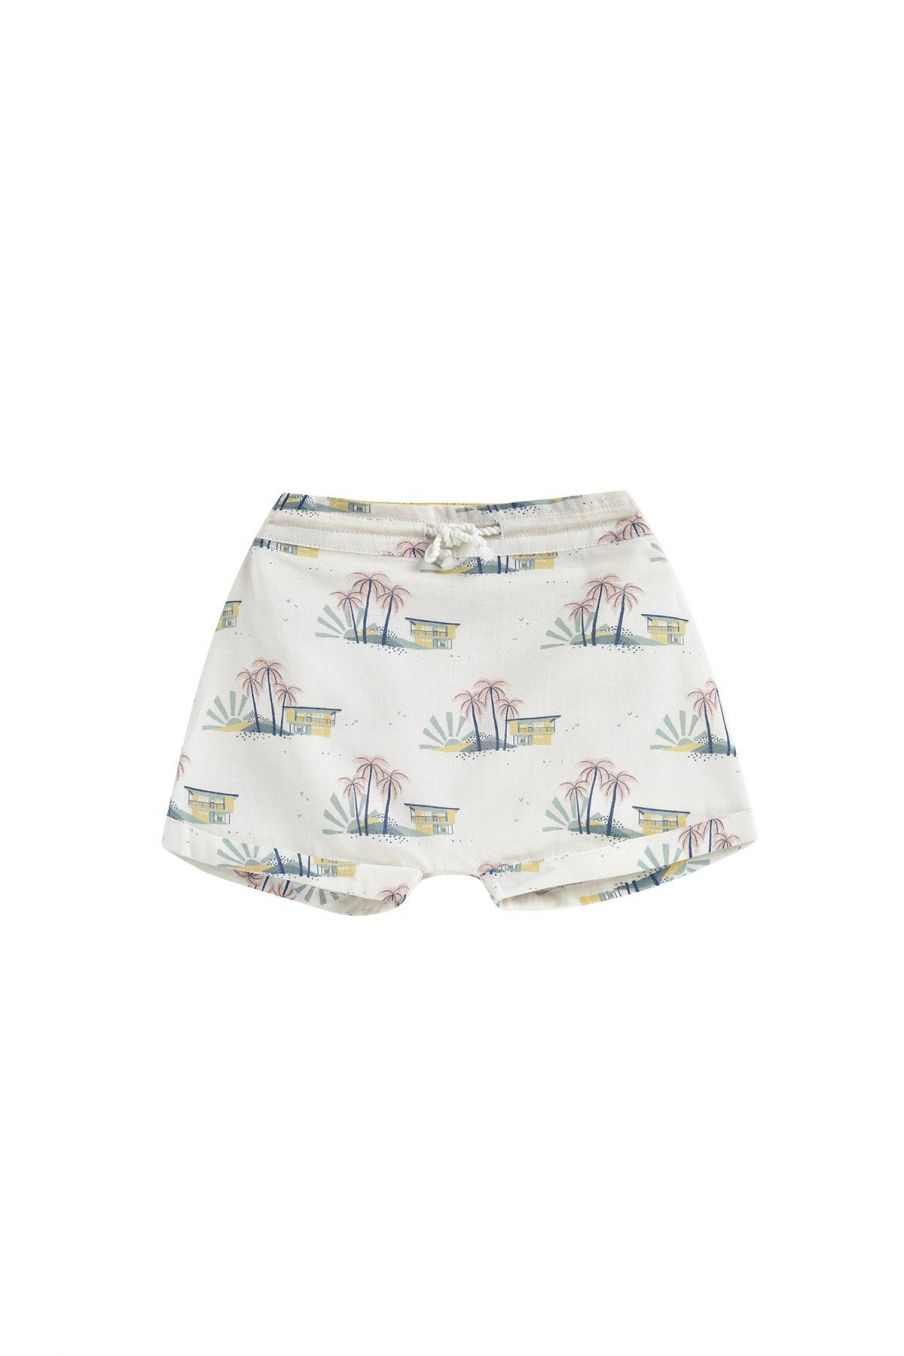 boheme chic vintage short bébé garcon aliki off-white hawaï